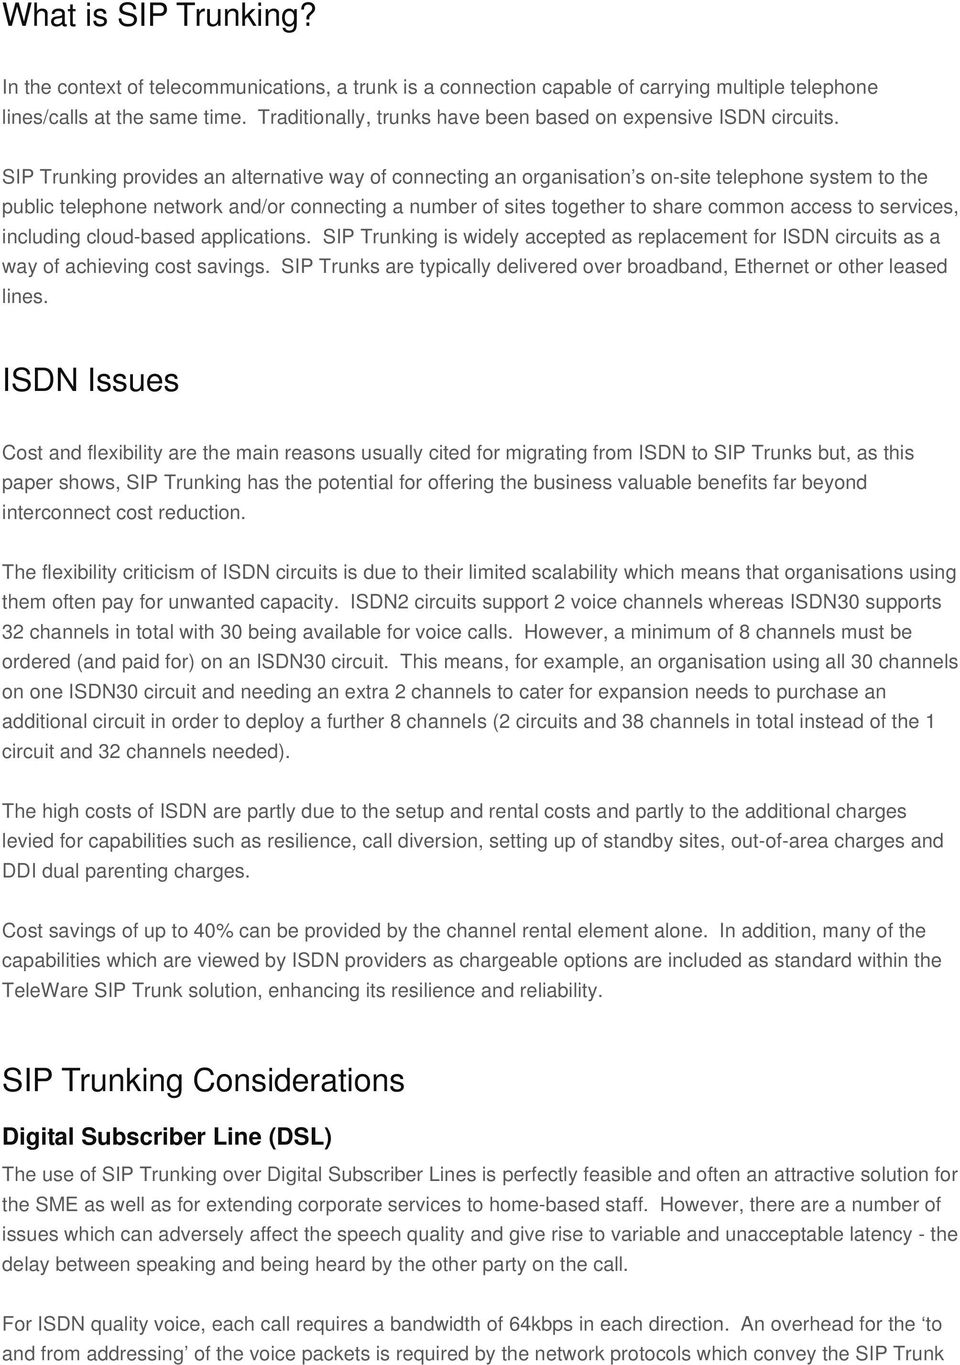 SIP Trunking provides an alternative way of connecting an organisation s on-site telephone system to the public telephone network and/or connecting a number of sites together to share common access